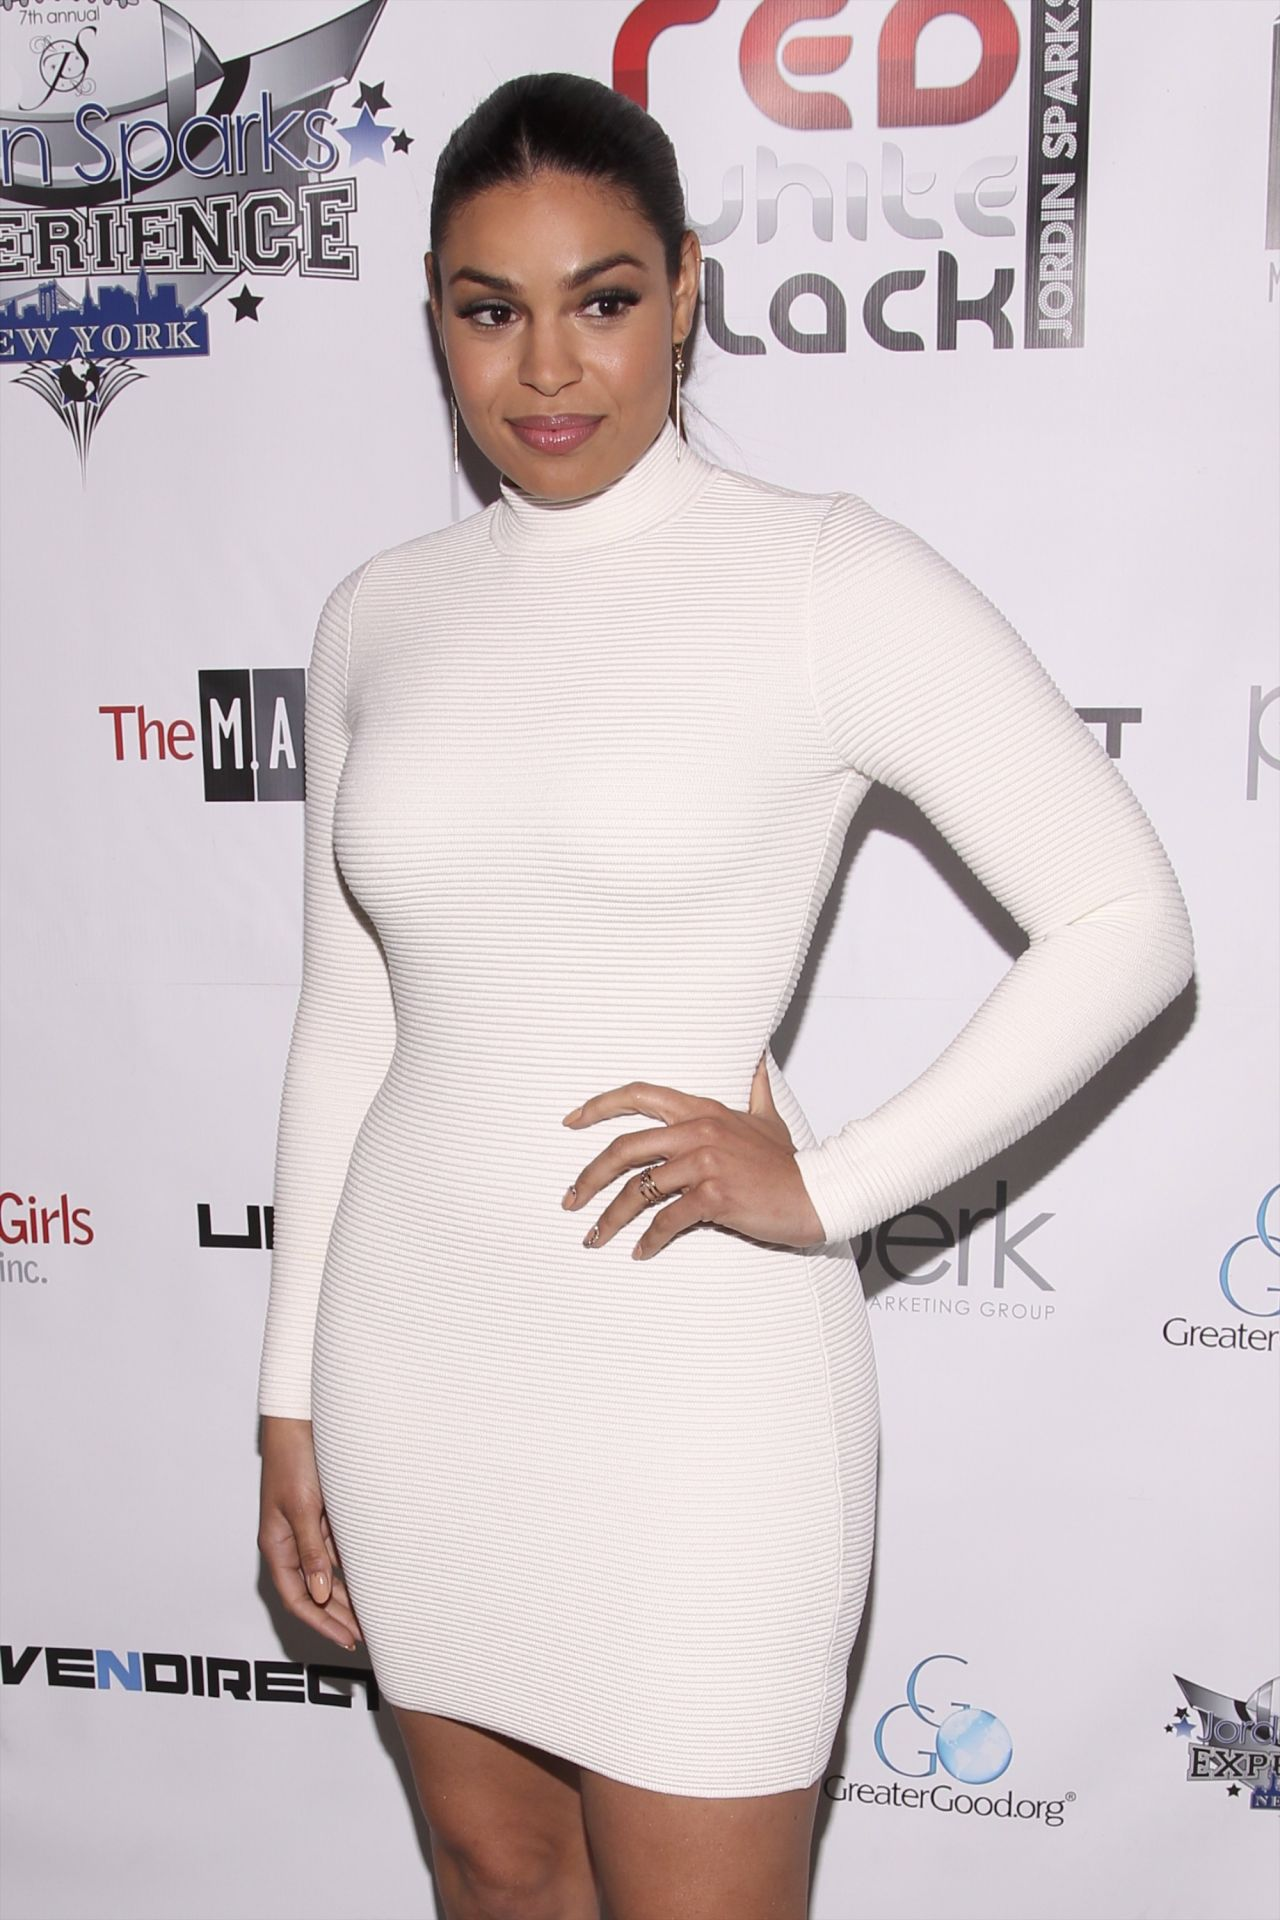 Jordin Sparks in White Dress at Welcome to New York Red, White and Black Super Bowl Party in New York